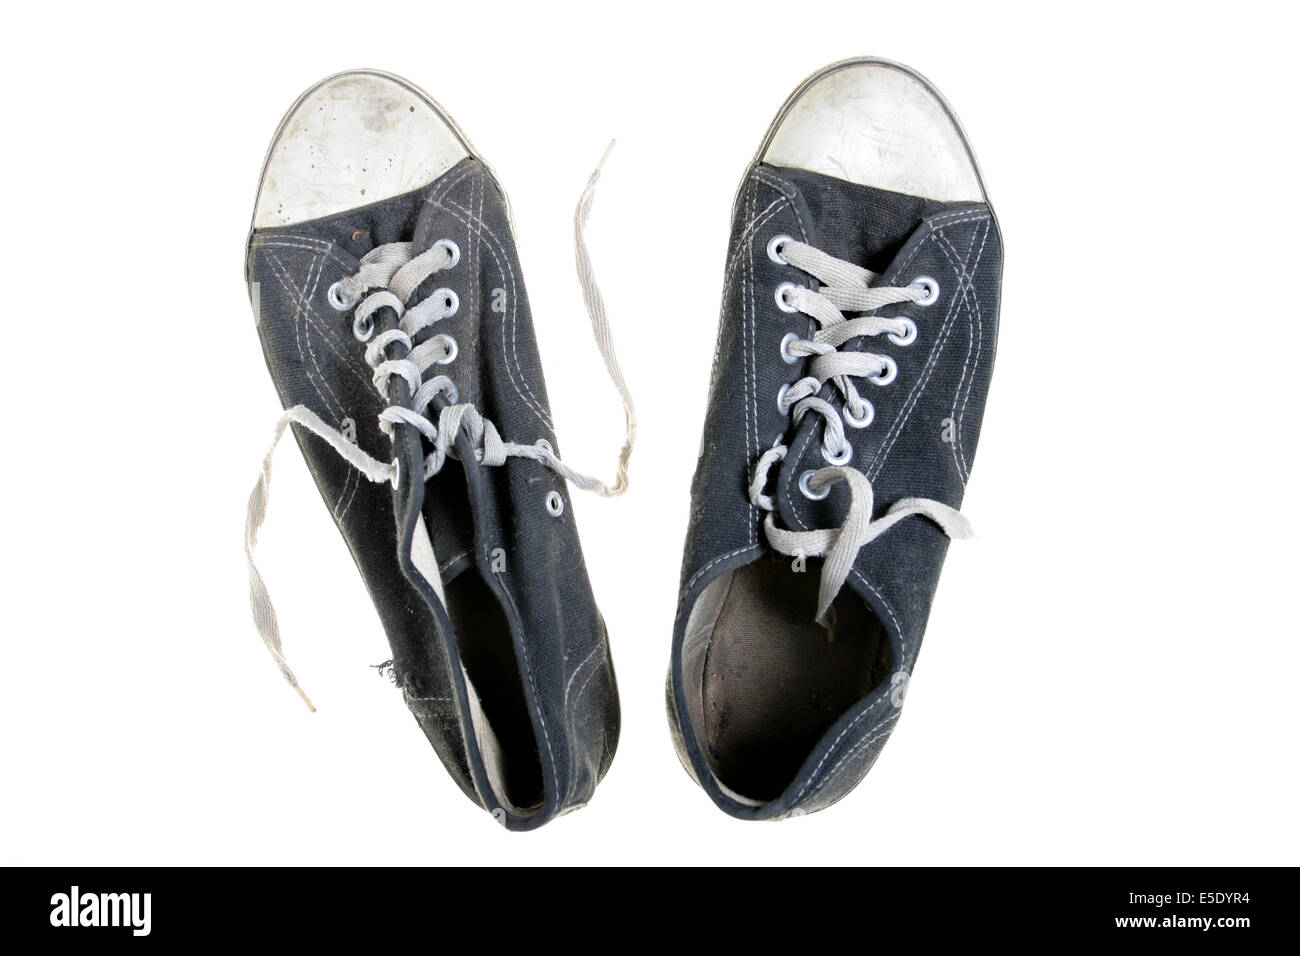 Black Gym Shoes Stock Photos & Black Gym Shoes Stock Images - Alamy